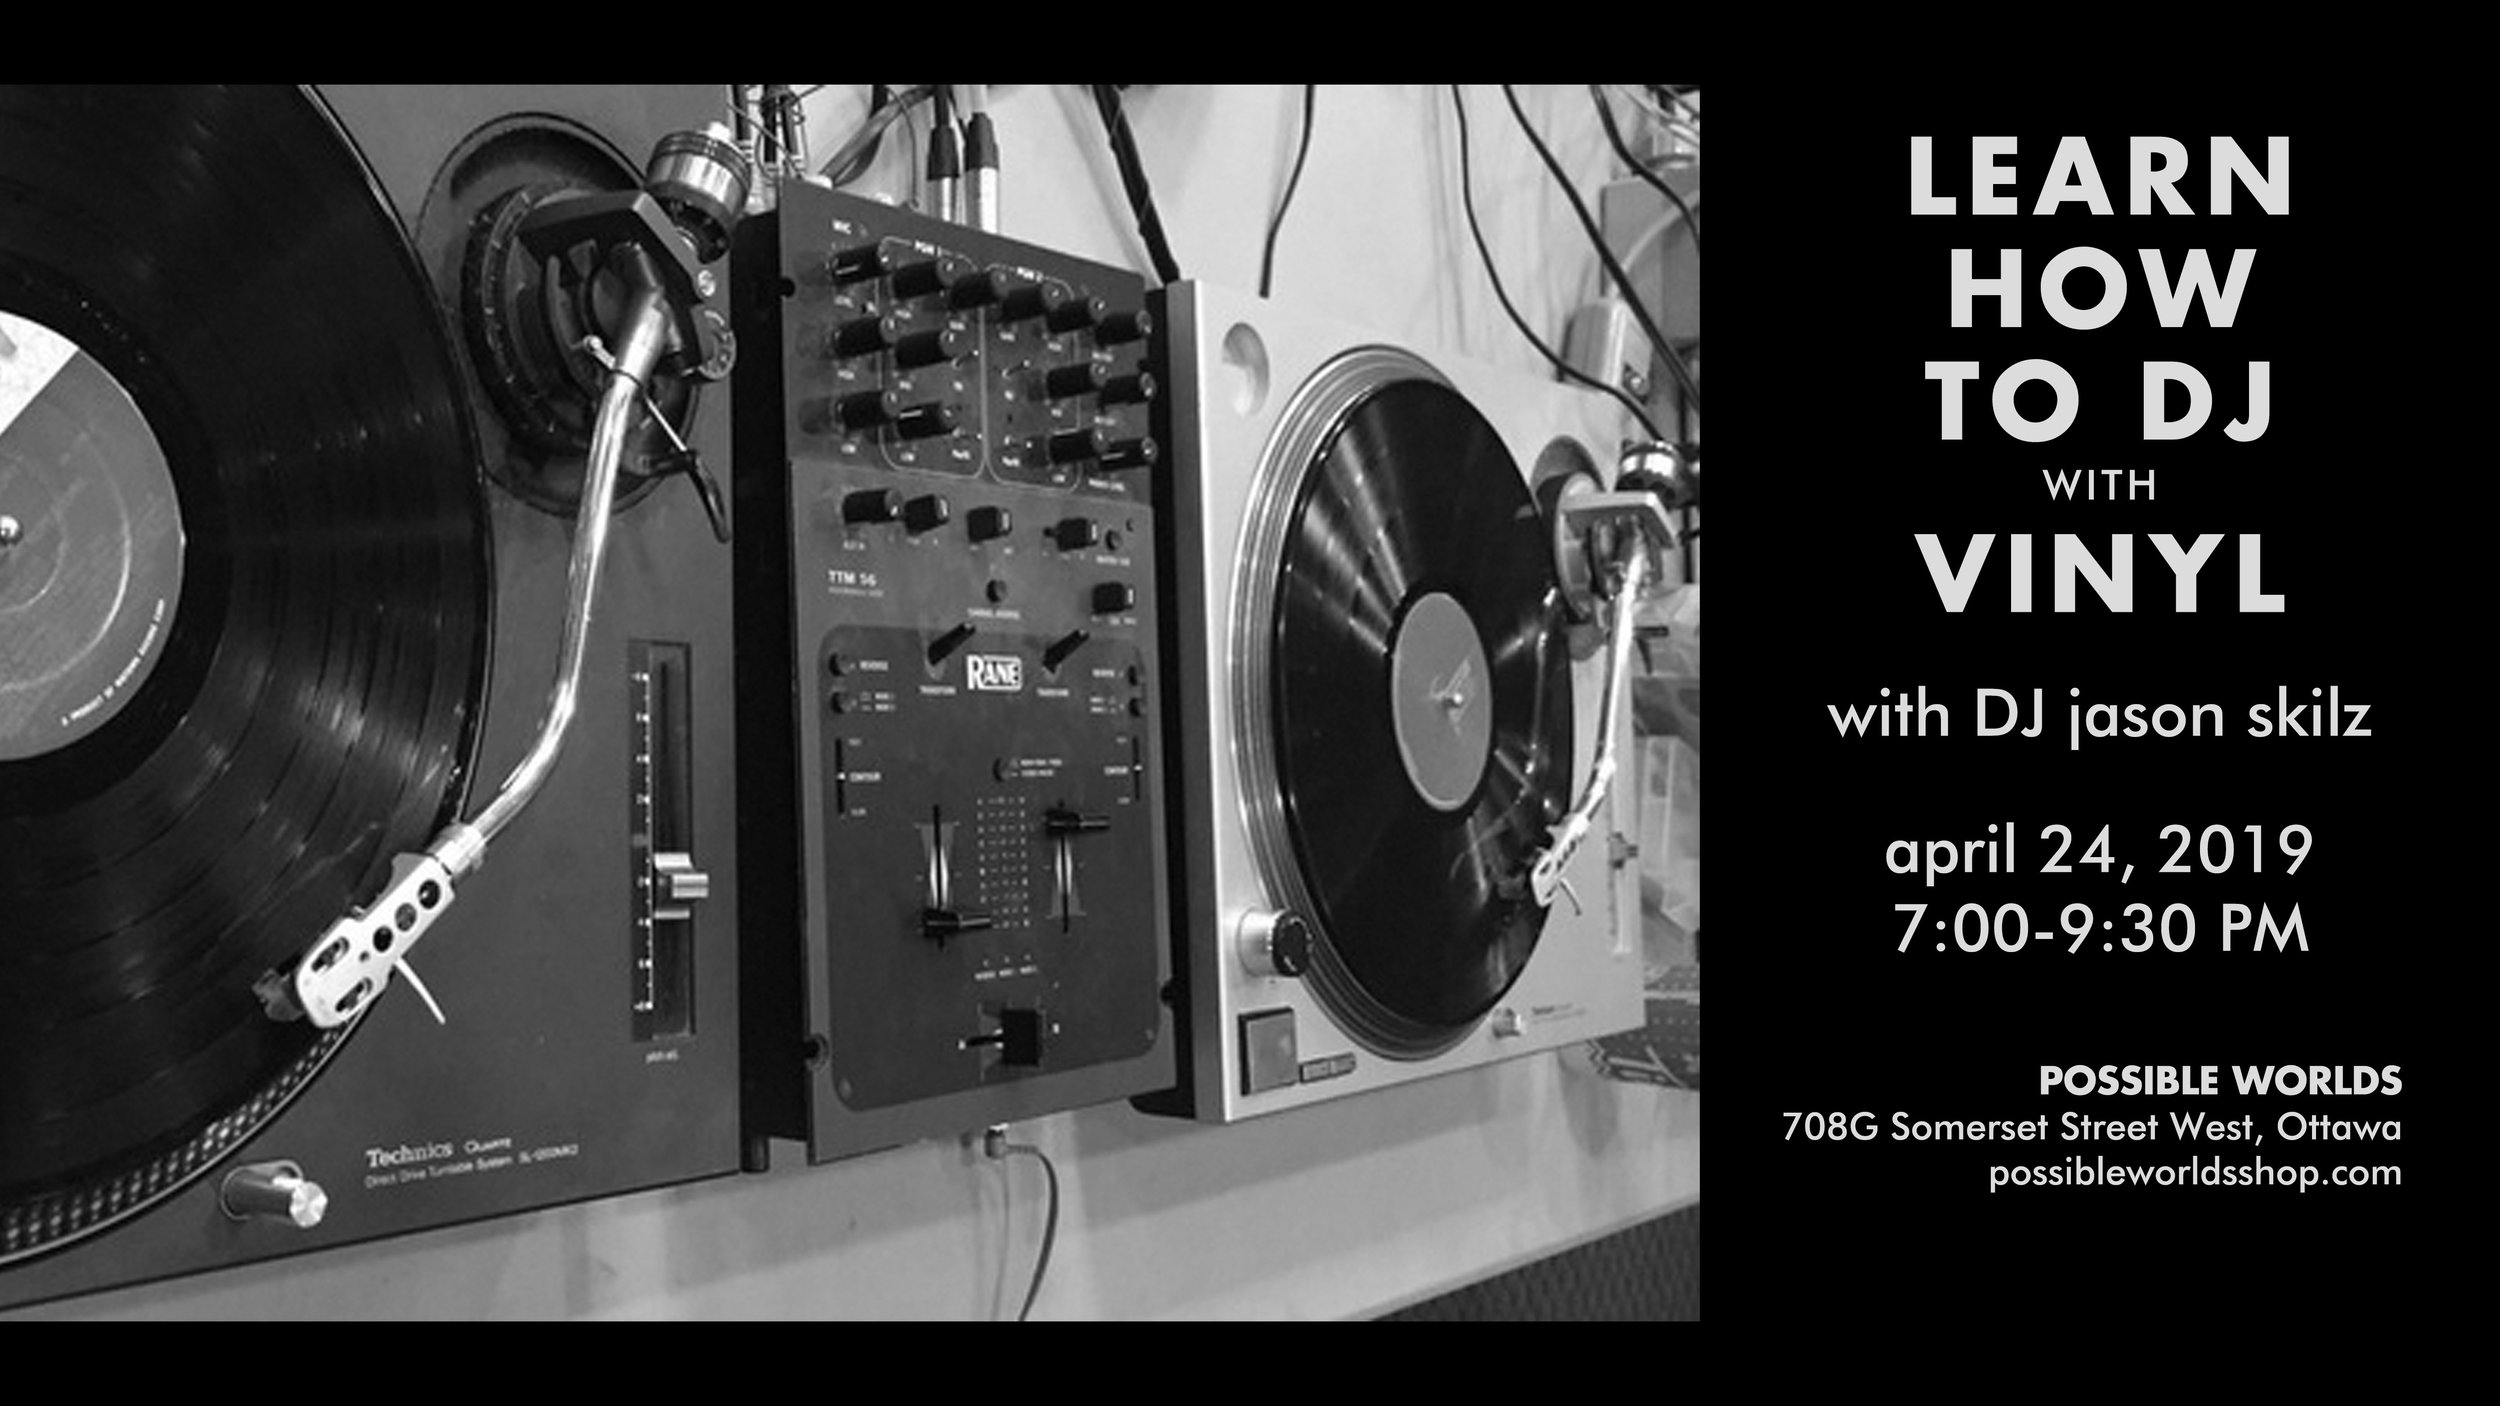 learn-how-to-dj-with-vinyl-workshop.jpg